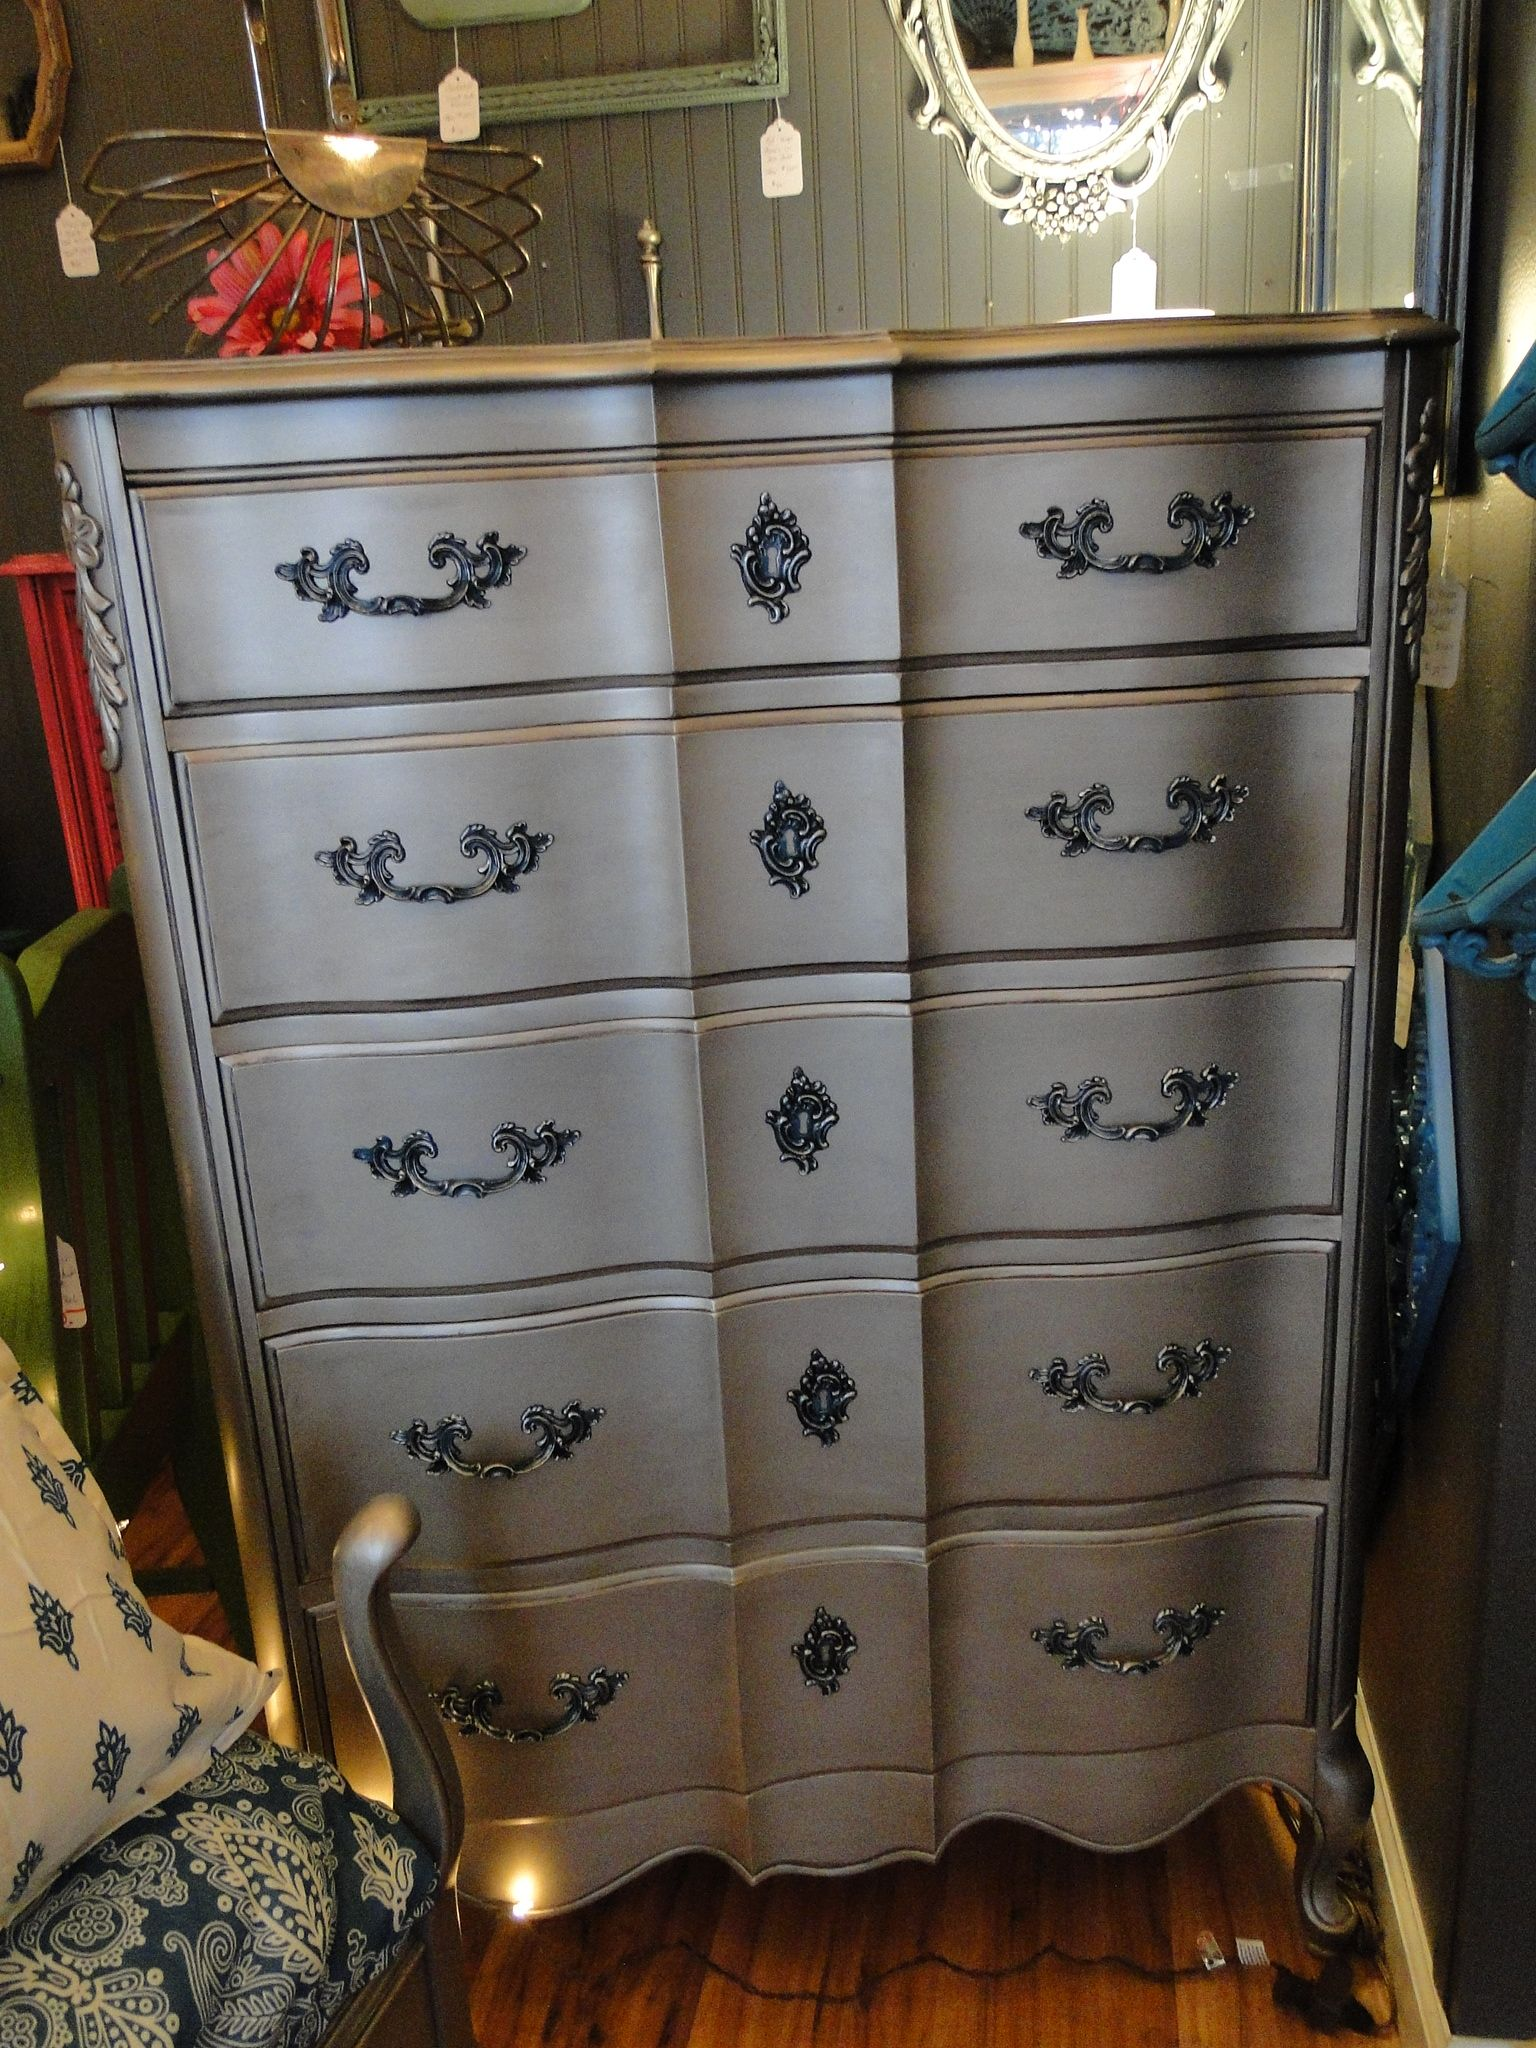 Tarnished Silver French Provincial Bedroom Set with teal accented handles and drawers. Modern Vintage